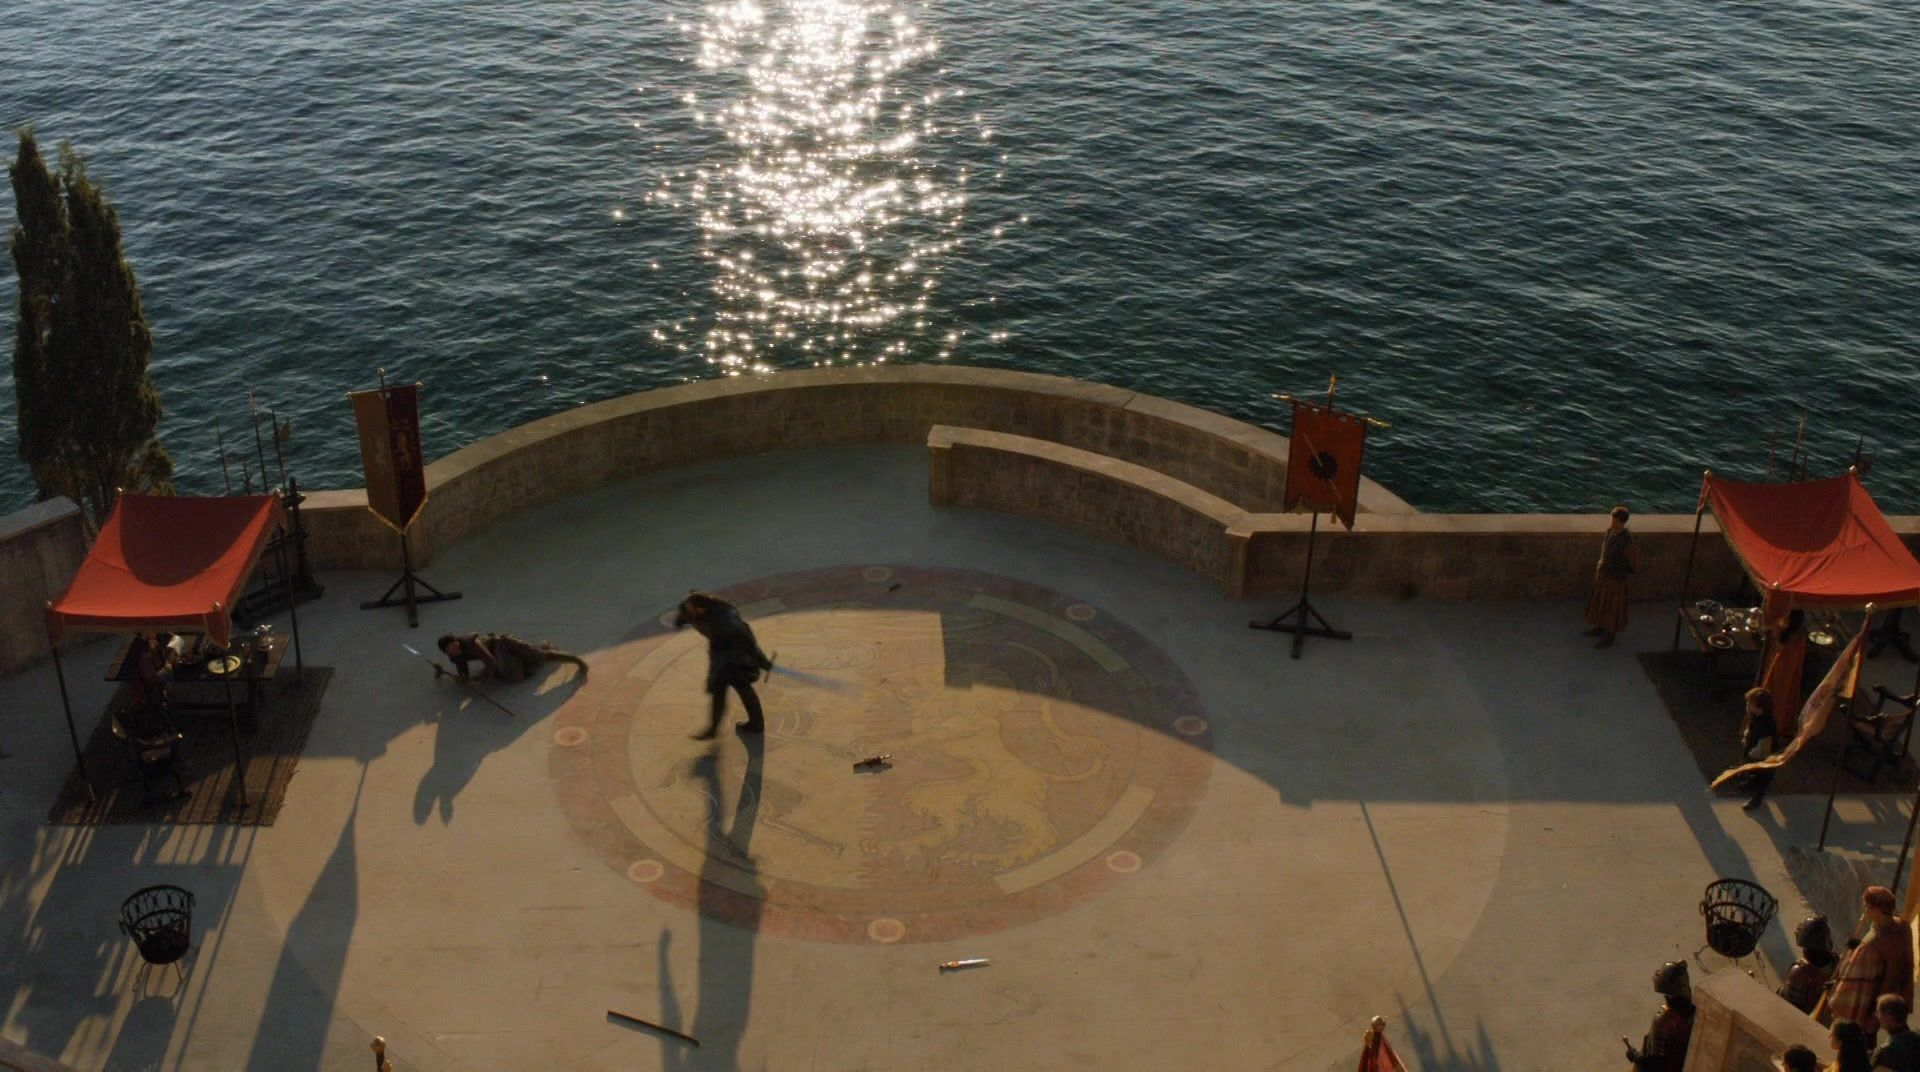 Game Of Thrones Croatia: Locations And Tours - S4 E8 Belvedere Hotel Atrium - Fight Between Prince Oberyn & The Mountain